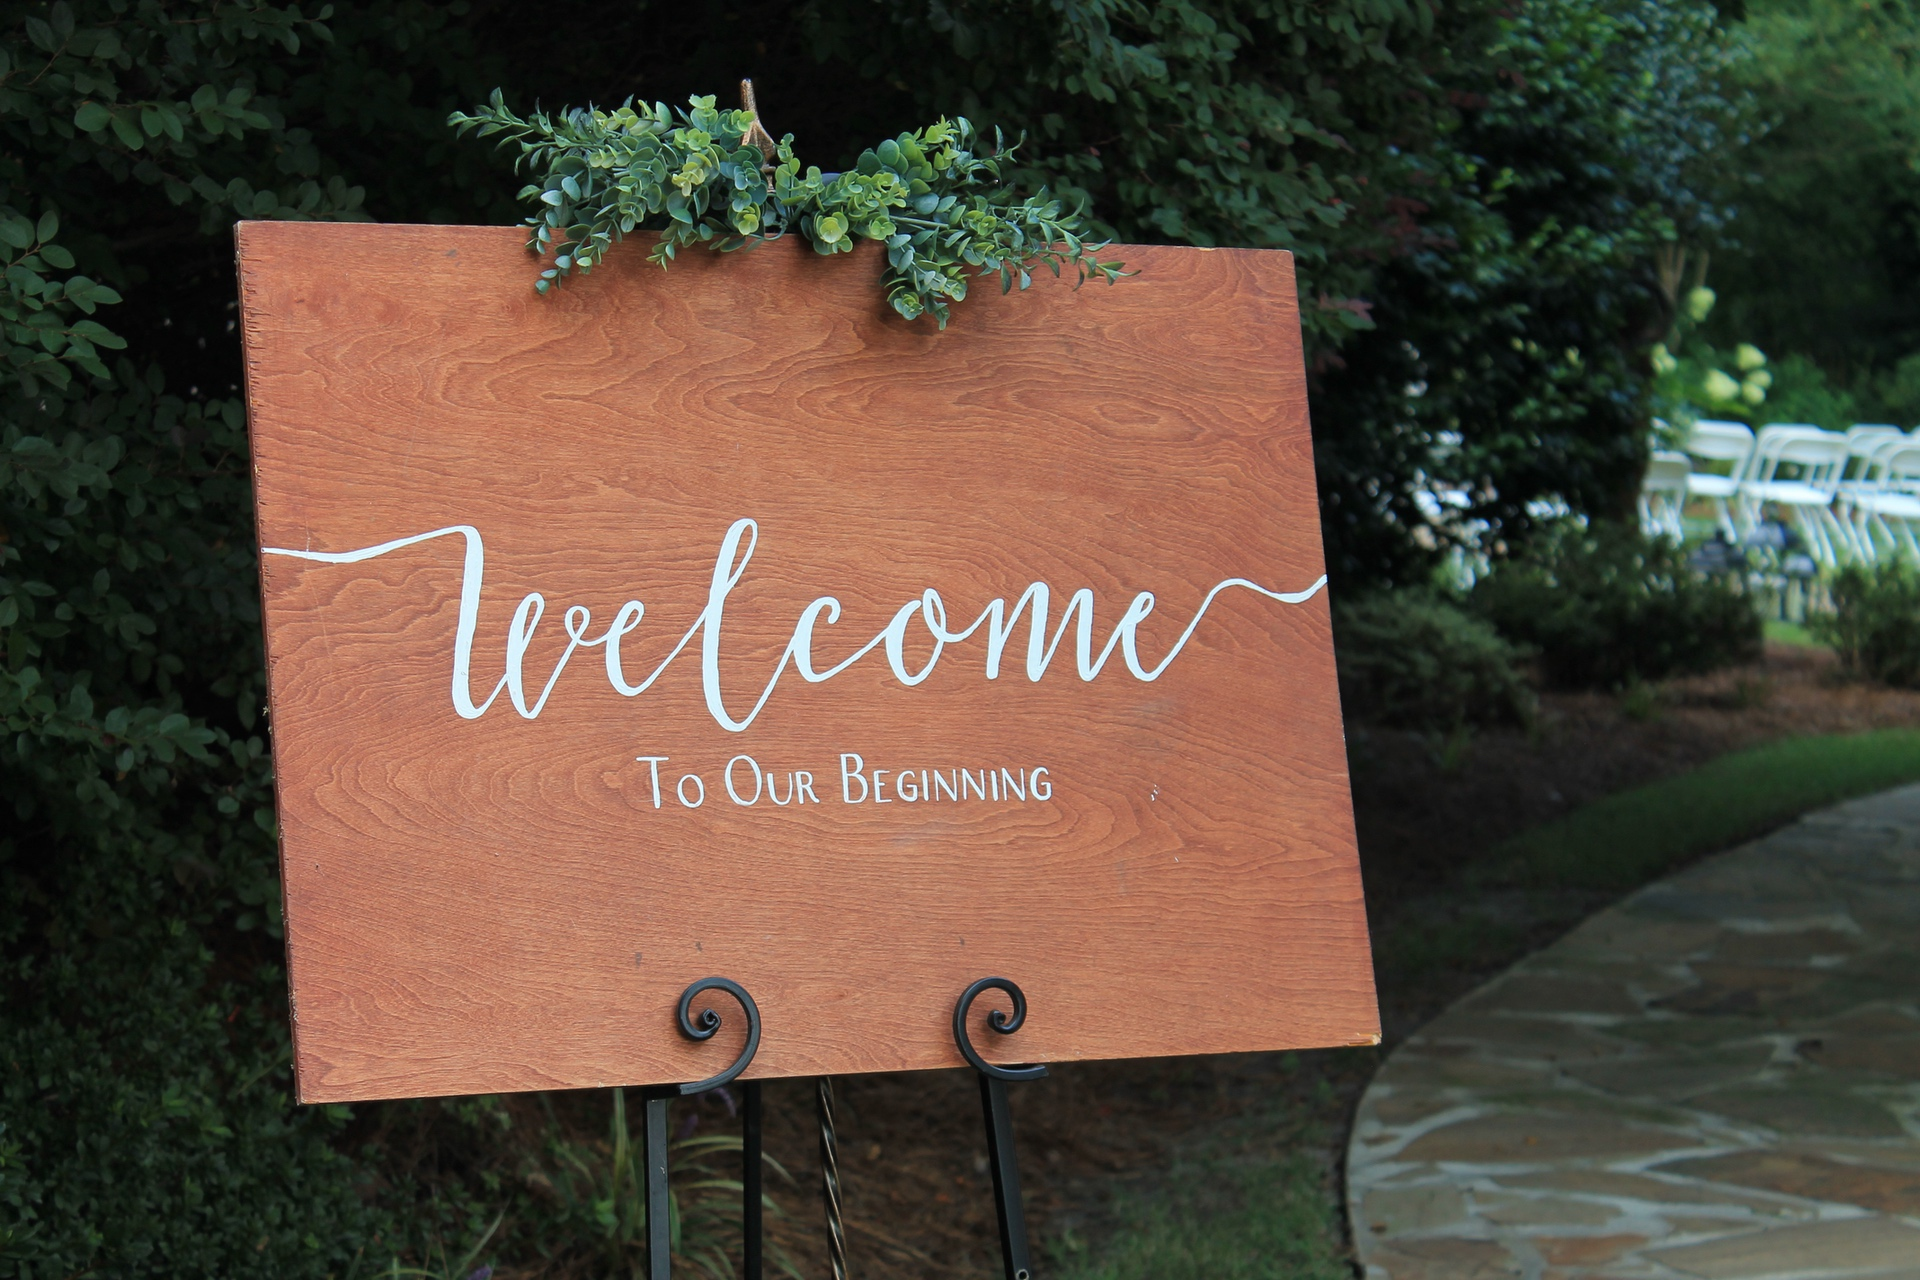 The Hall Wedding Garden welcome sign